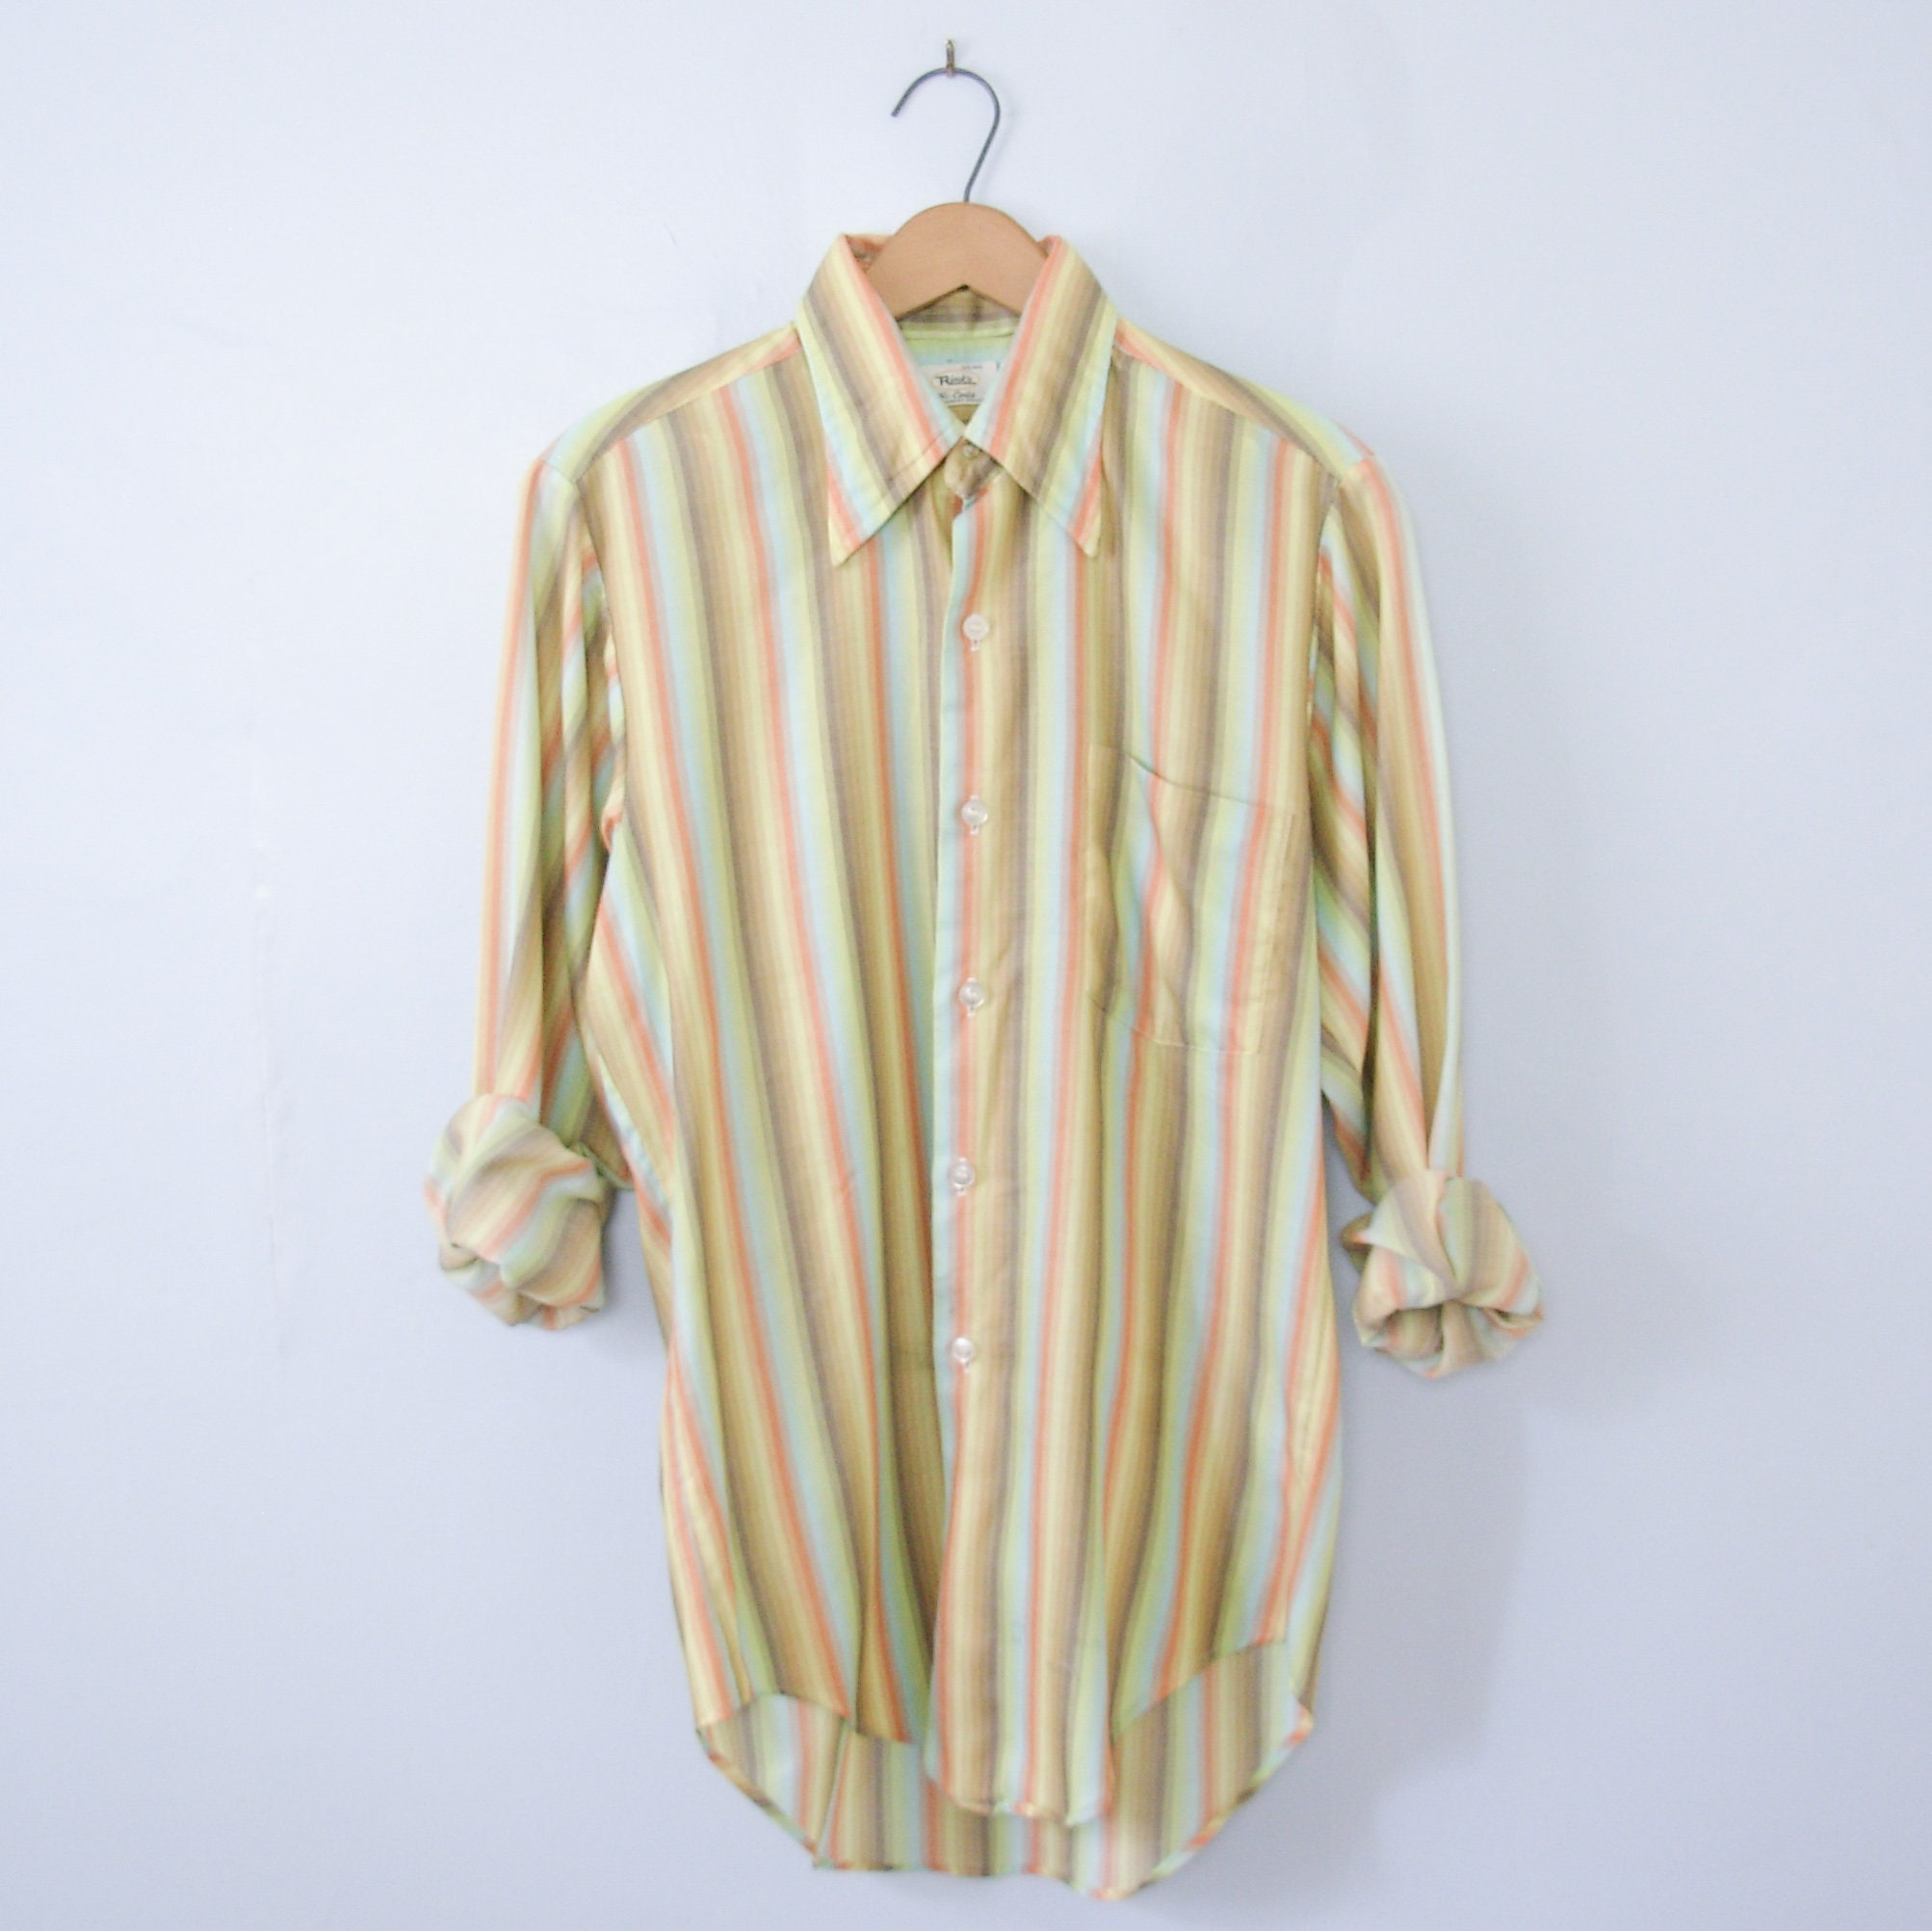 1970s Men's Shirt Styles – Vintage 70s Shirts for Guys Vintage 70s Rainbow Striped Button Up Shirt With Pocket, Mens Size Small $35.00 AT vintagedancer.com